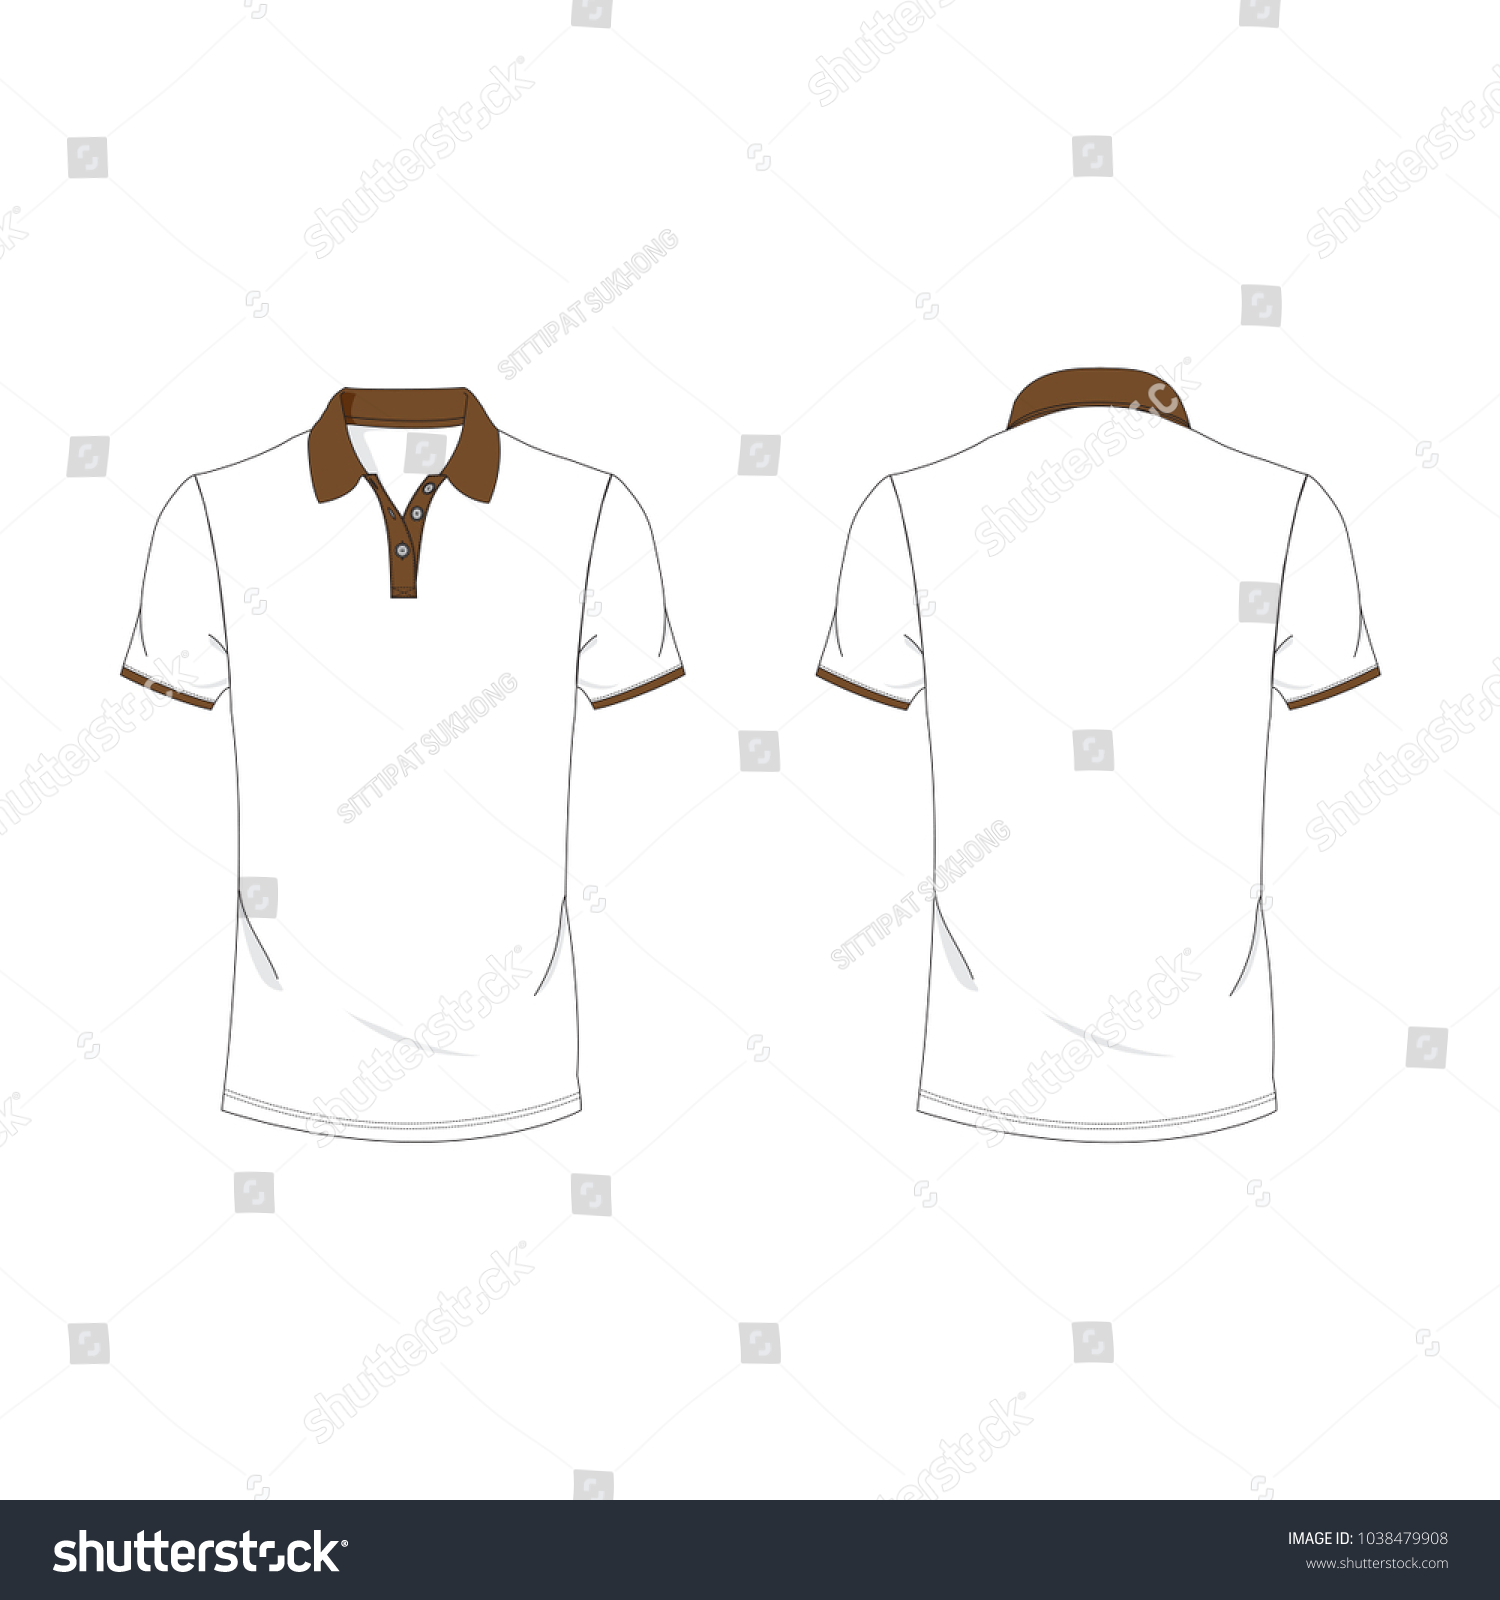 Dark Brown White Polo Tshirt Template Stock Vector (Royalty Free ...